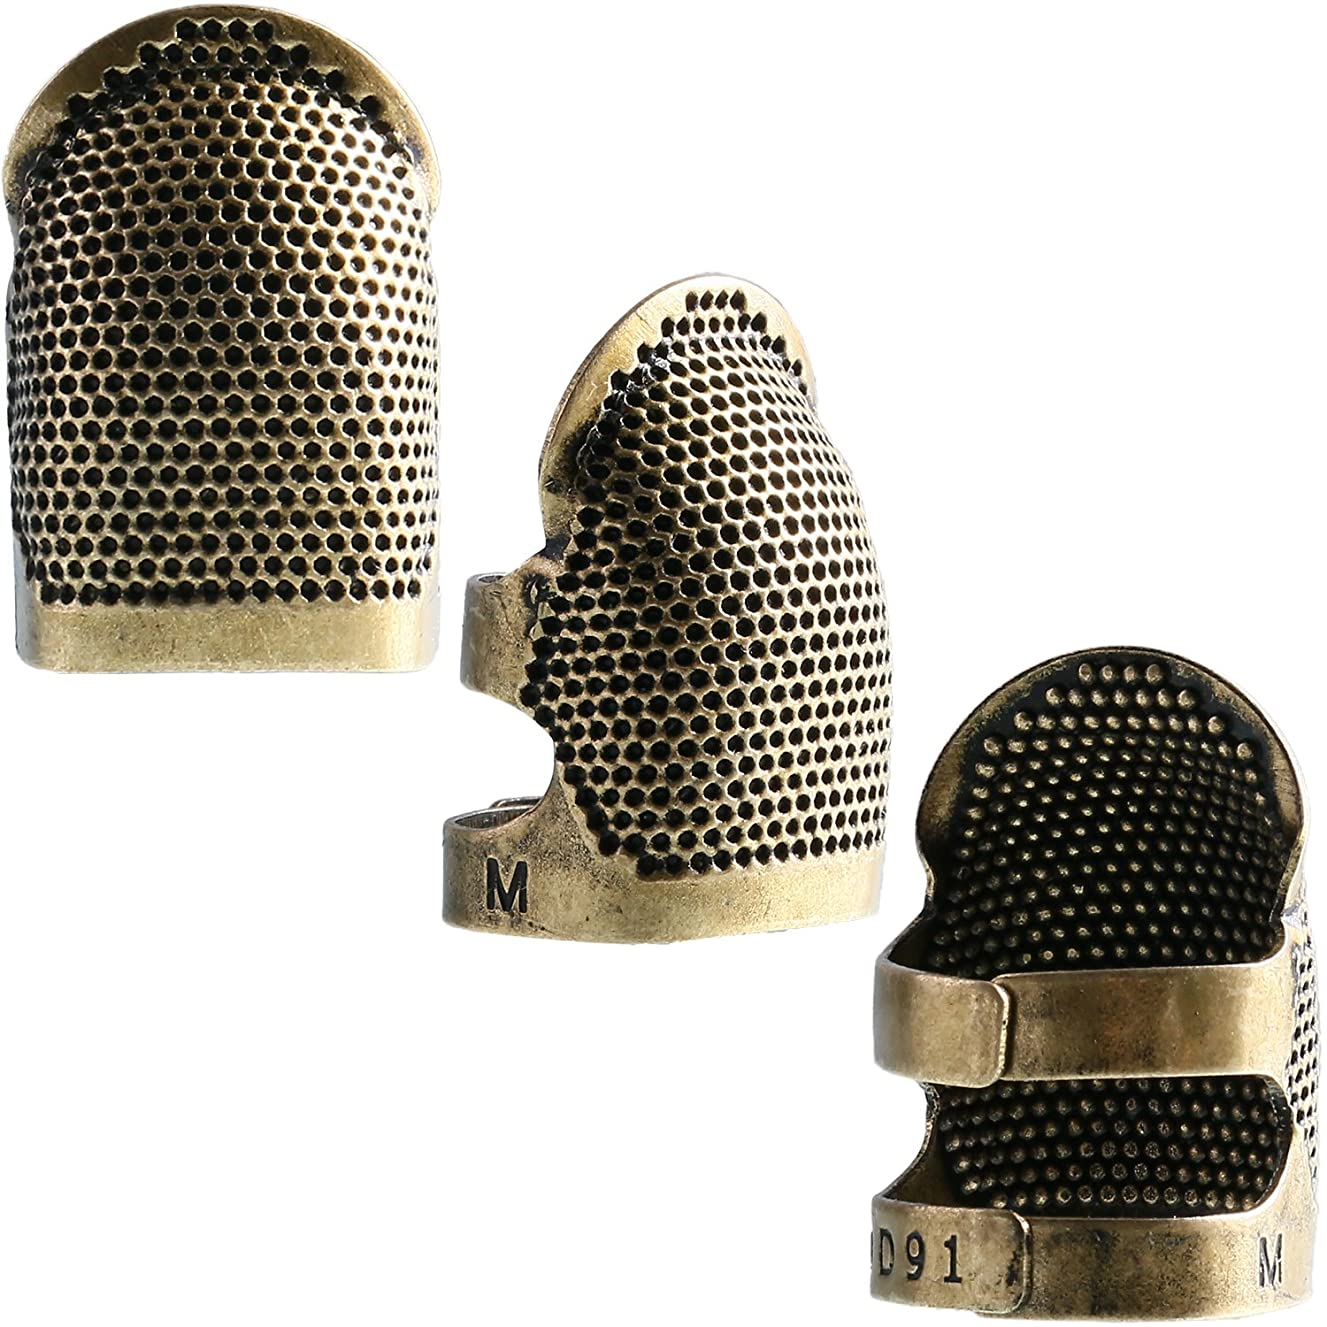 Zhanmai Copper Finger Protector Thimble Adjustable Fingertip Thimble for Sewing Embroidery Needlework, Medium